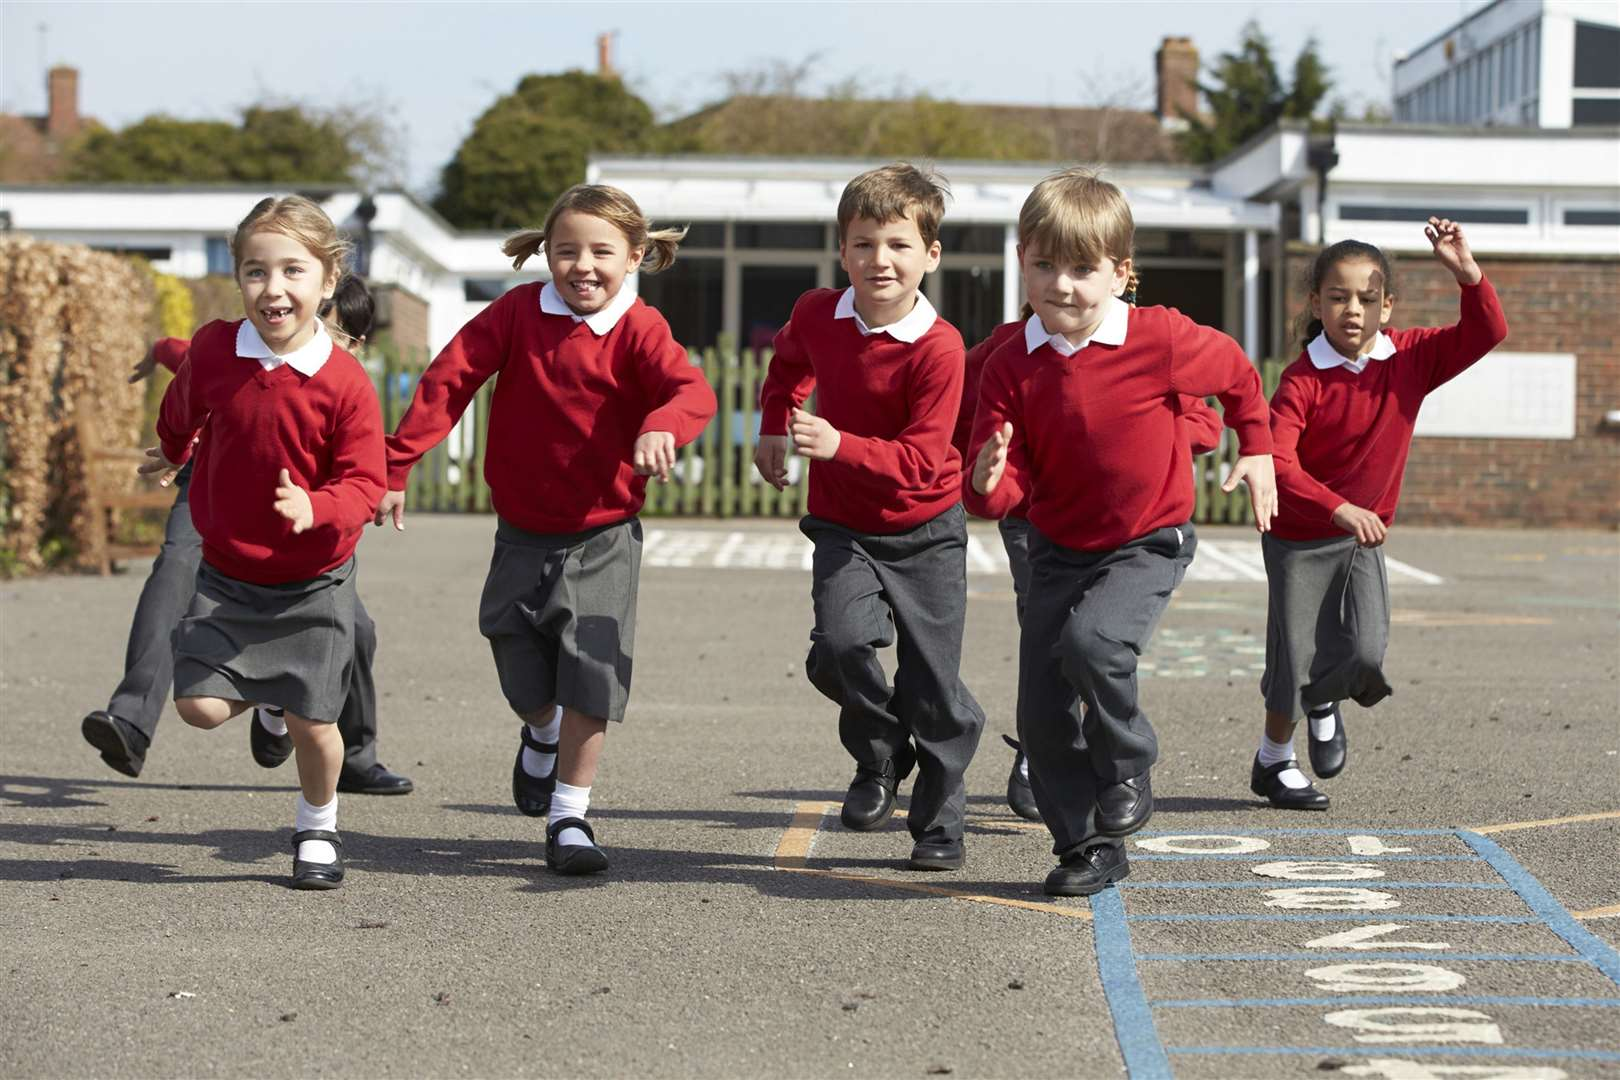 Parents of children due to start school in September will begin finding out this afternoon which school their child has been allocated